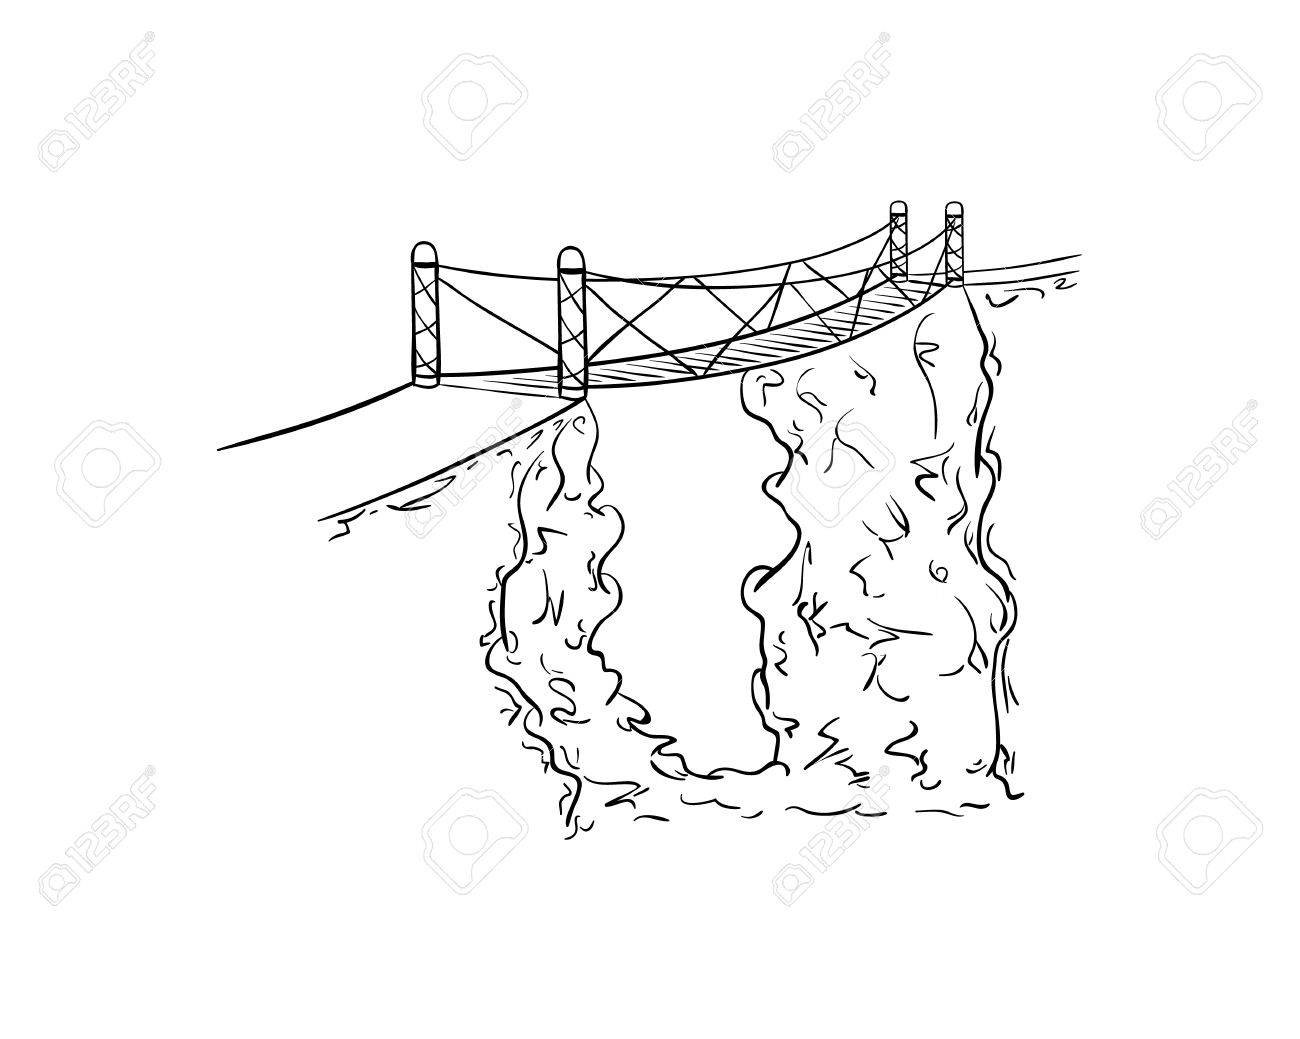 1300x1039 Rope Bridge Over The Abyss Between Two Rocks. Sketch Illustration